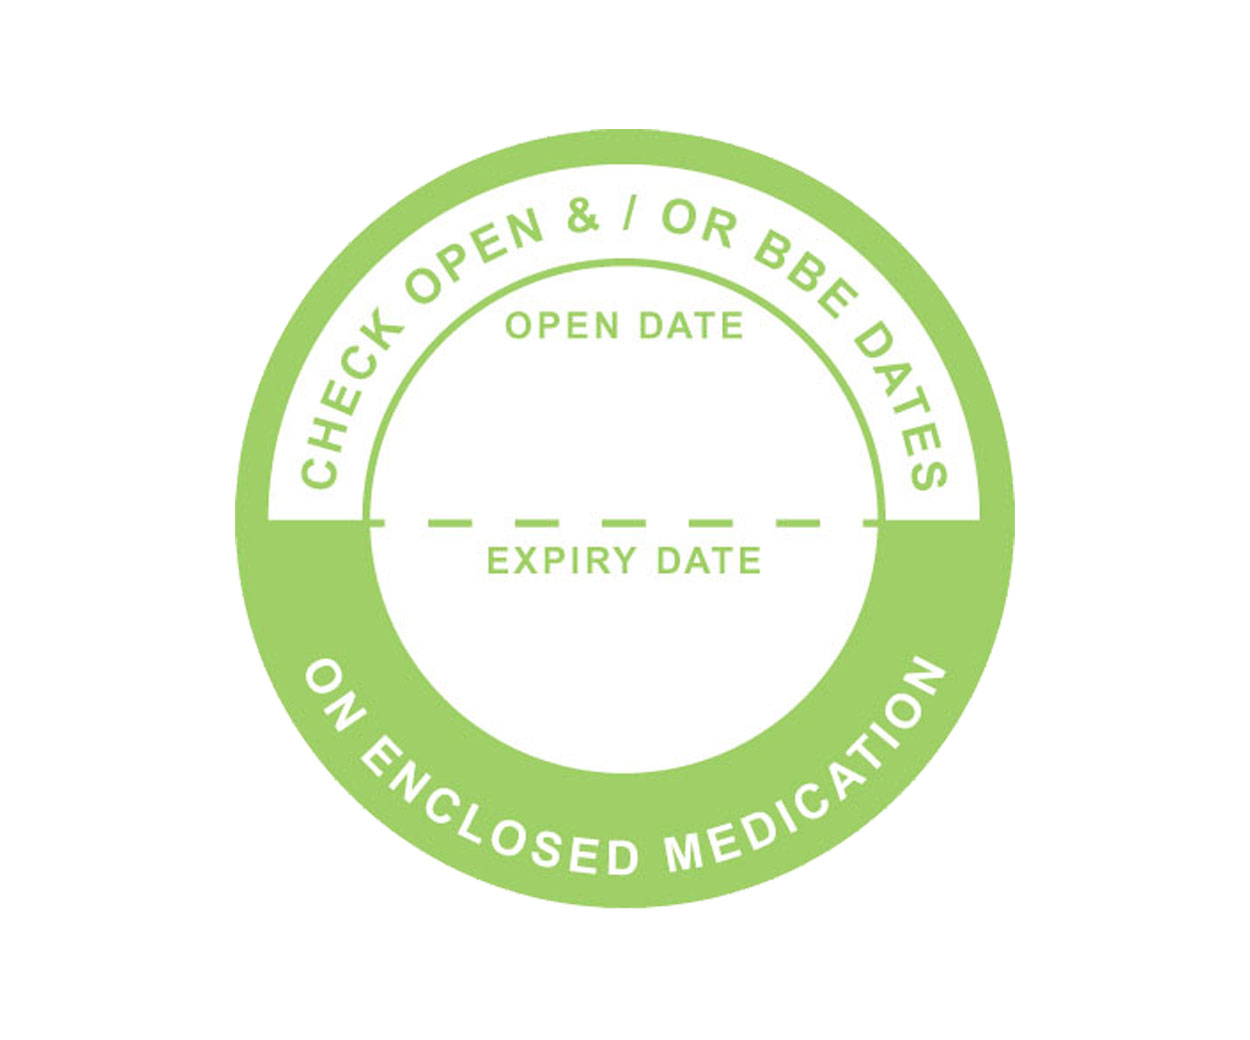 Check Open Date Prescription Alert Sticker